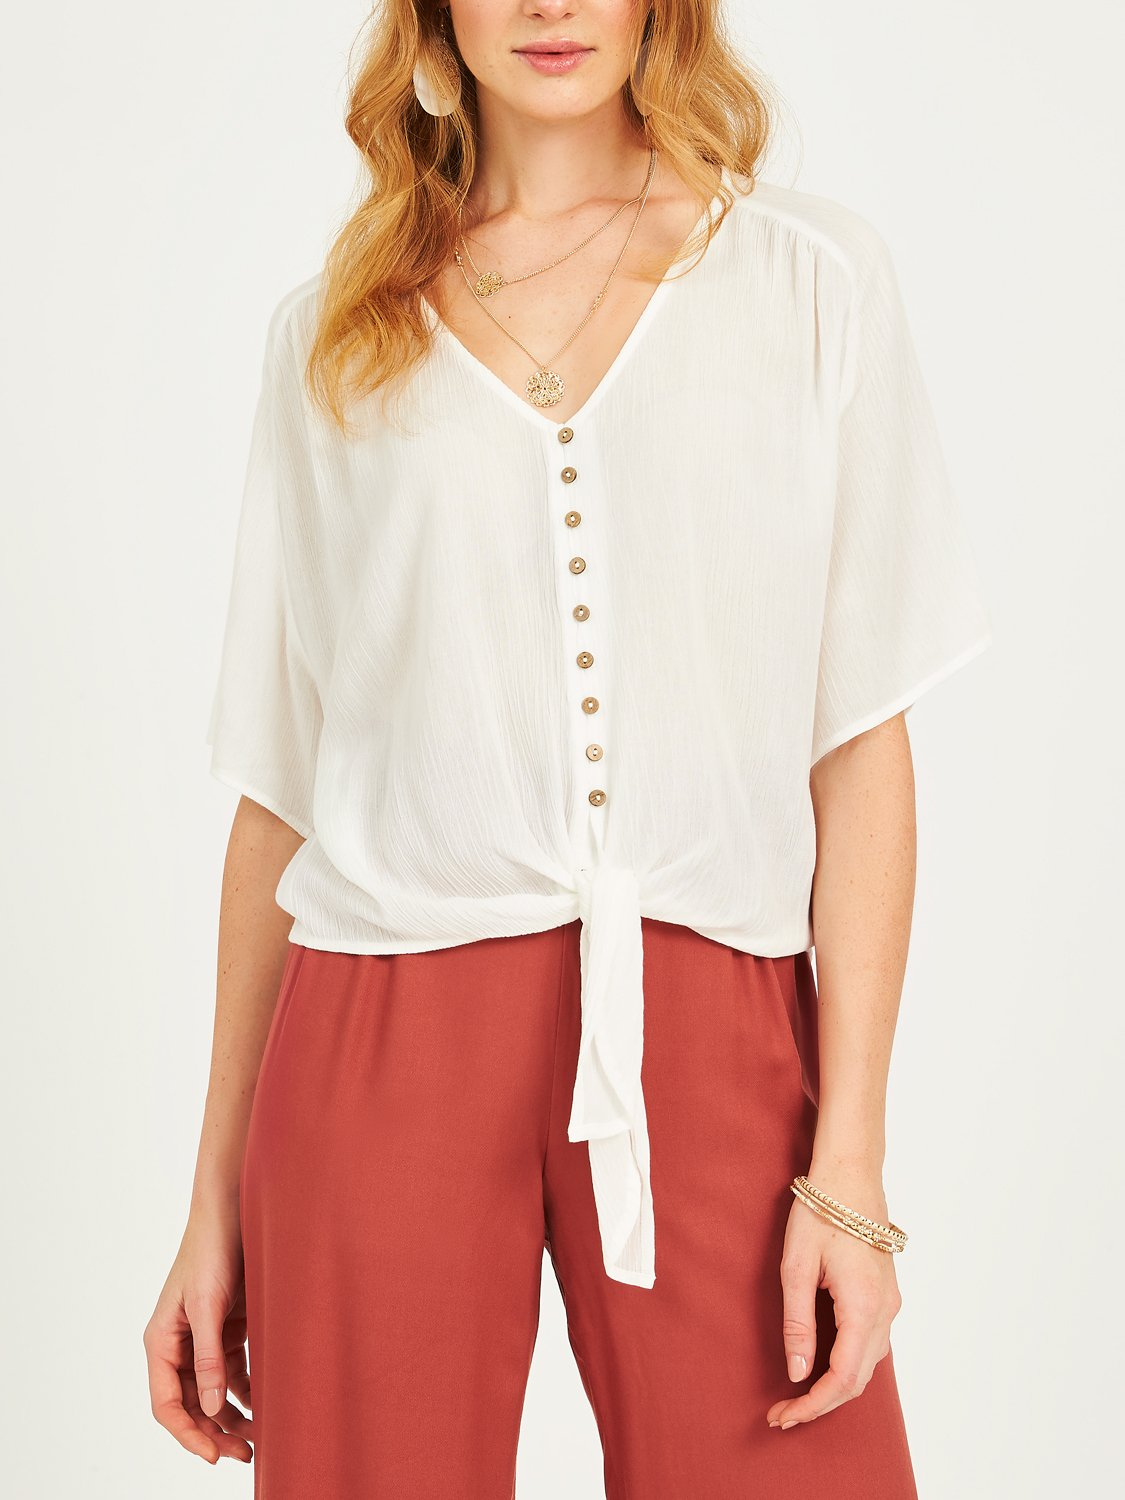 Copy of V-Neck Button front Blouse with Tie